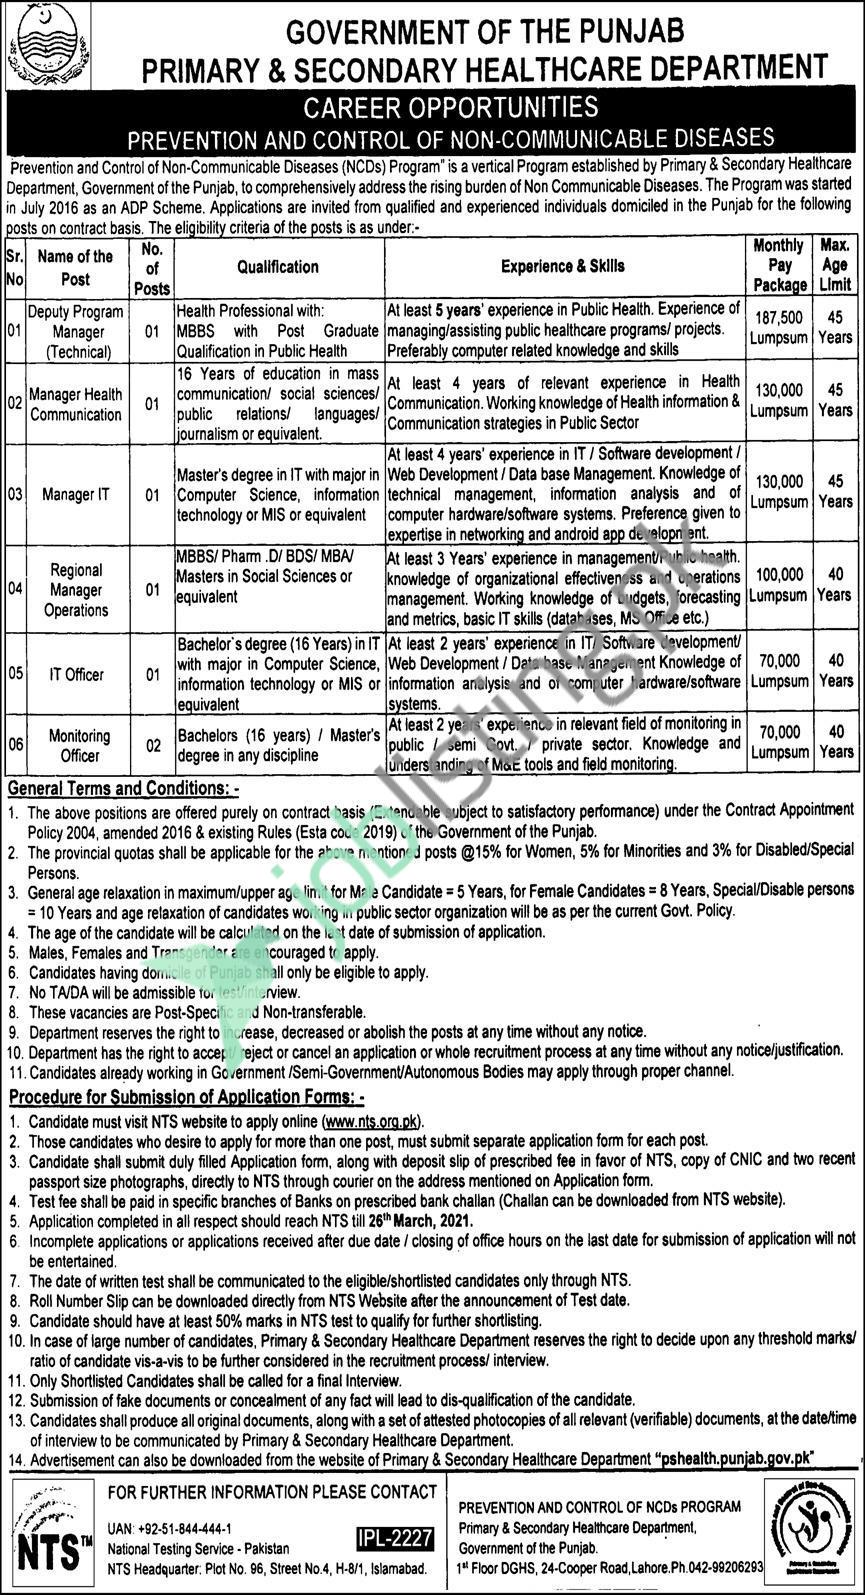 Primary Secondary Healthcare Department Punjab Jobs 2021